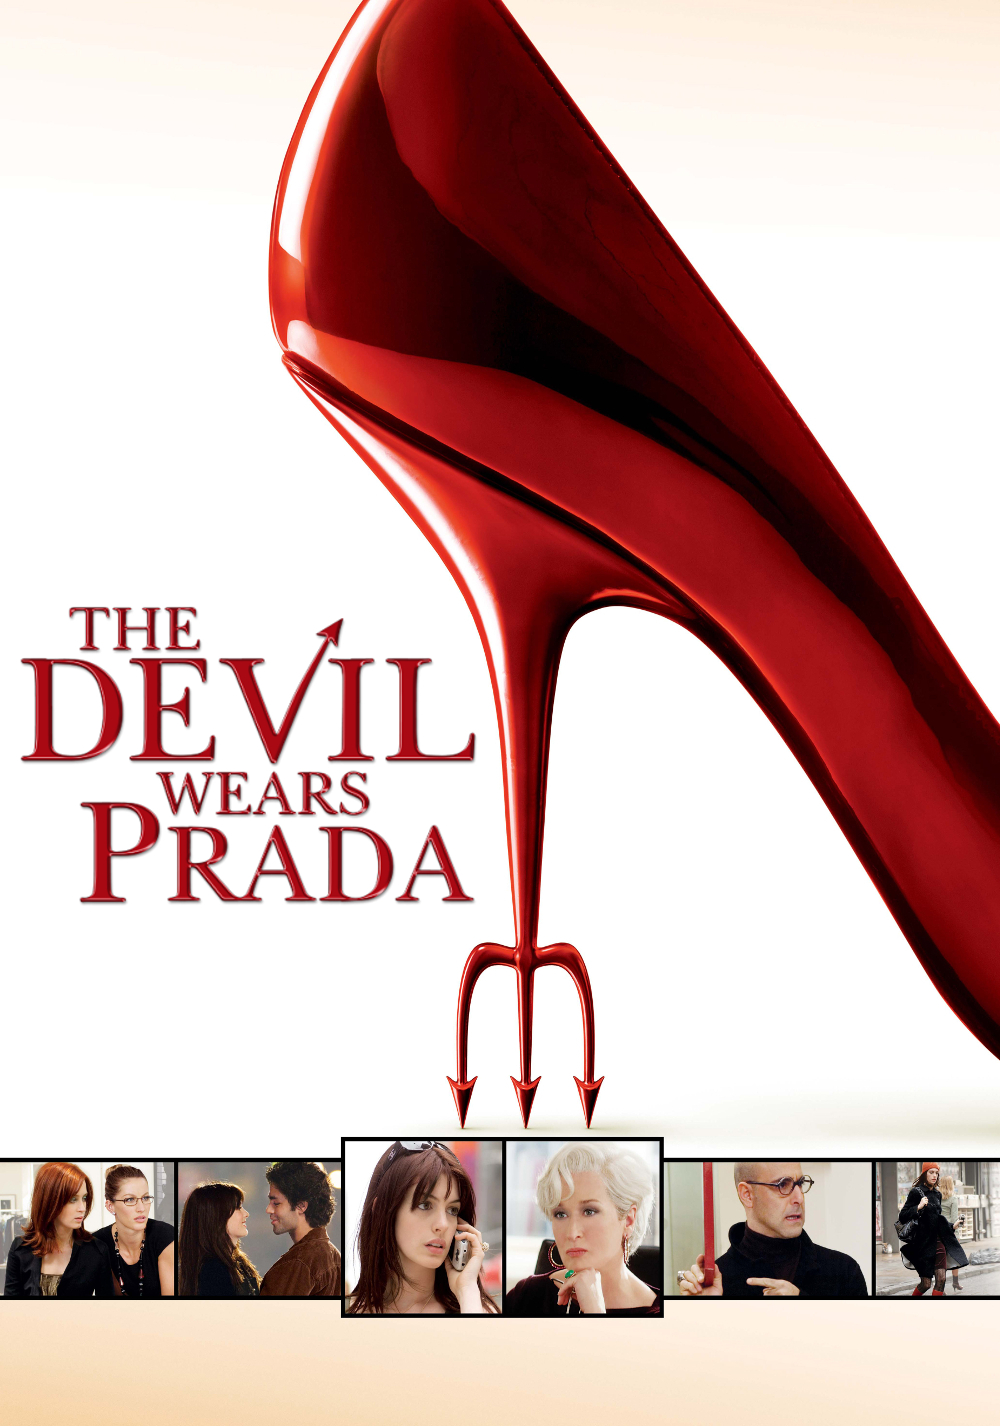 the devil wears prada belonging essay The devil wears prada quotes emily: i'm just one stomach flu away from my goal weight submit a quote from 'the devil wears prada' a quote can be a single line from one character or a memorable dialog between several characters.